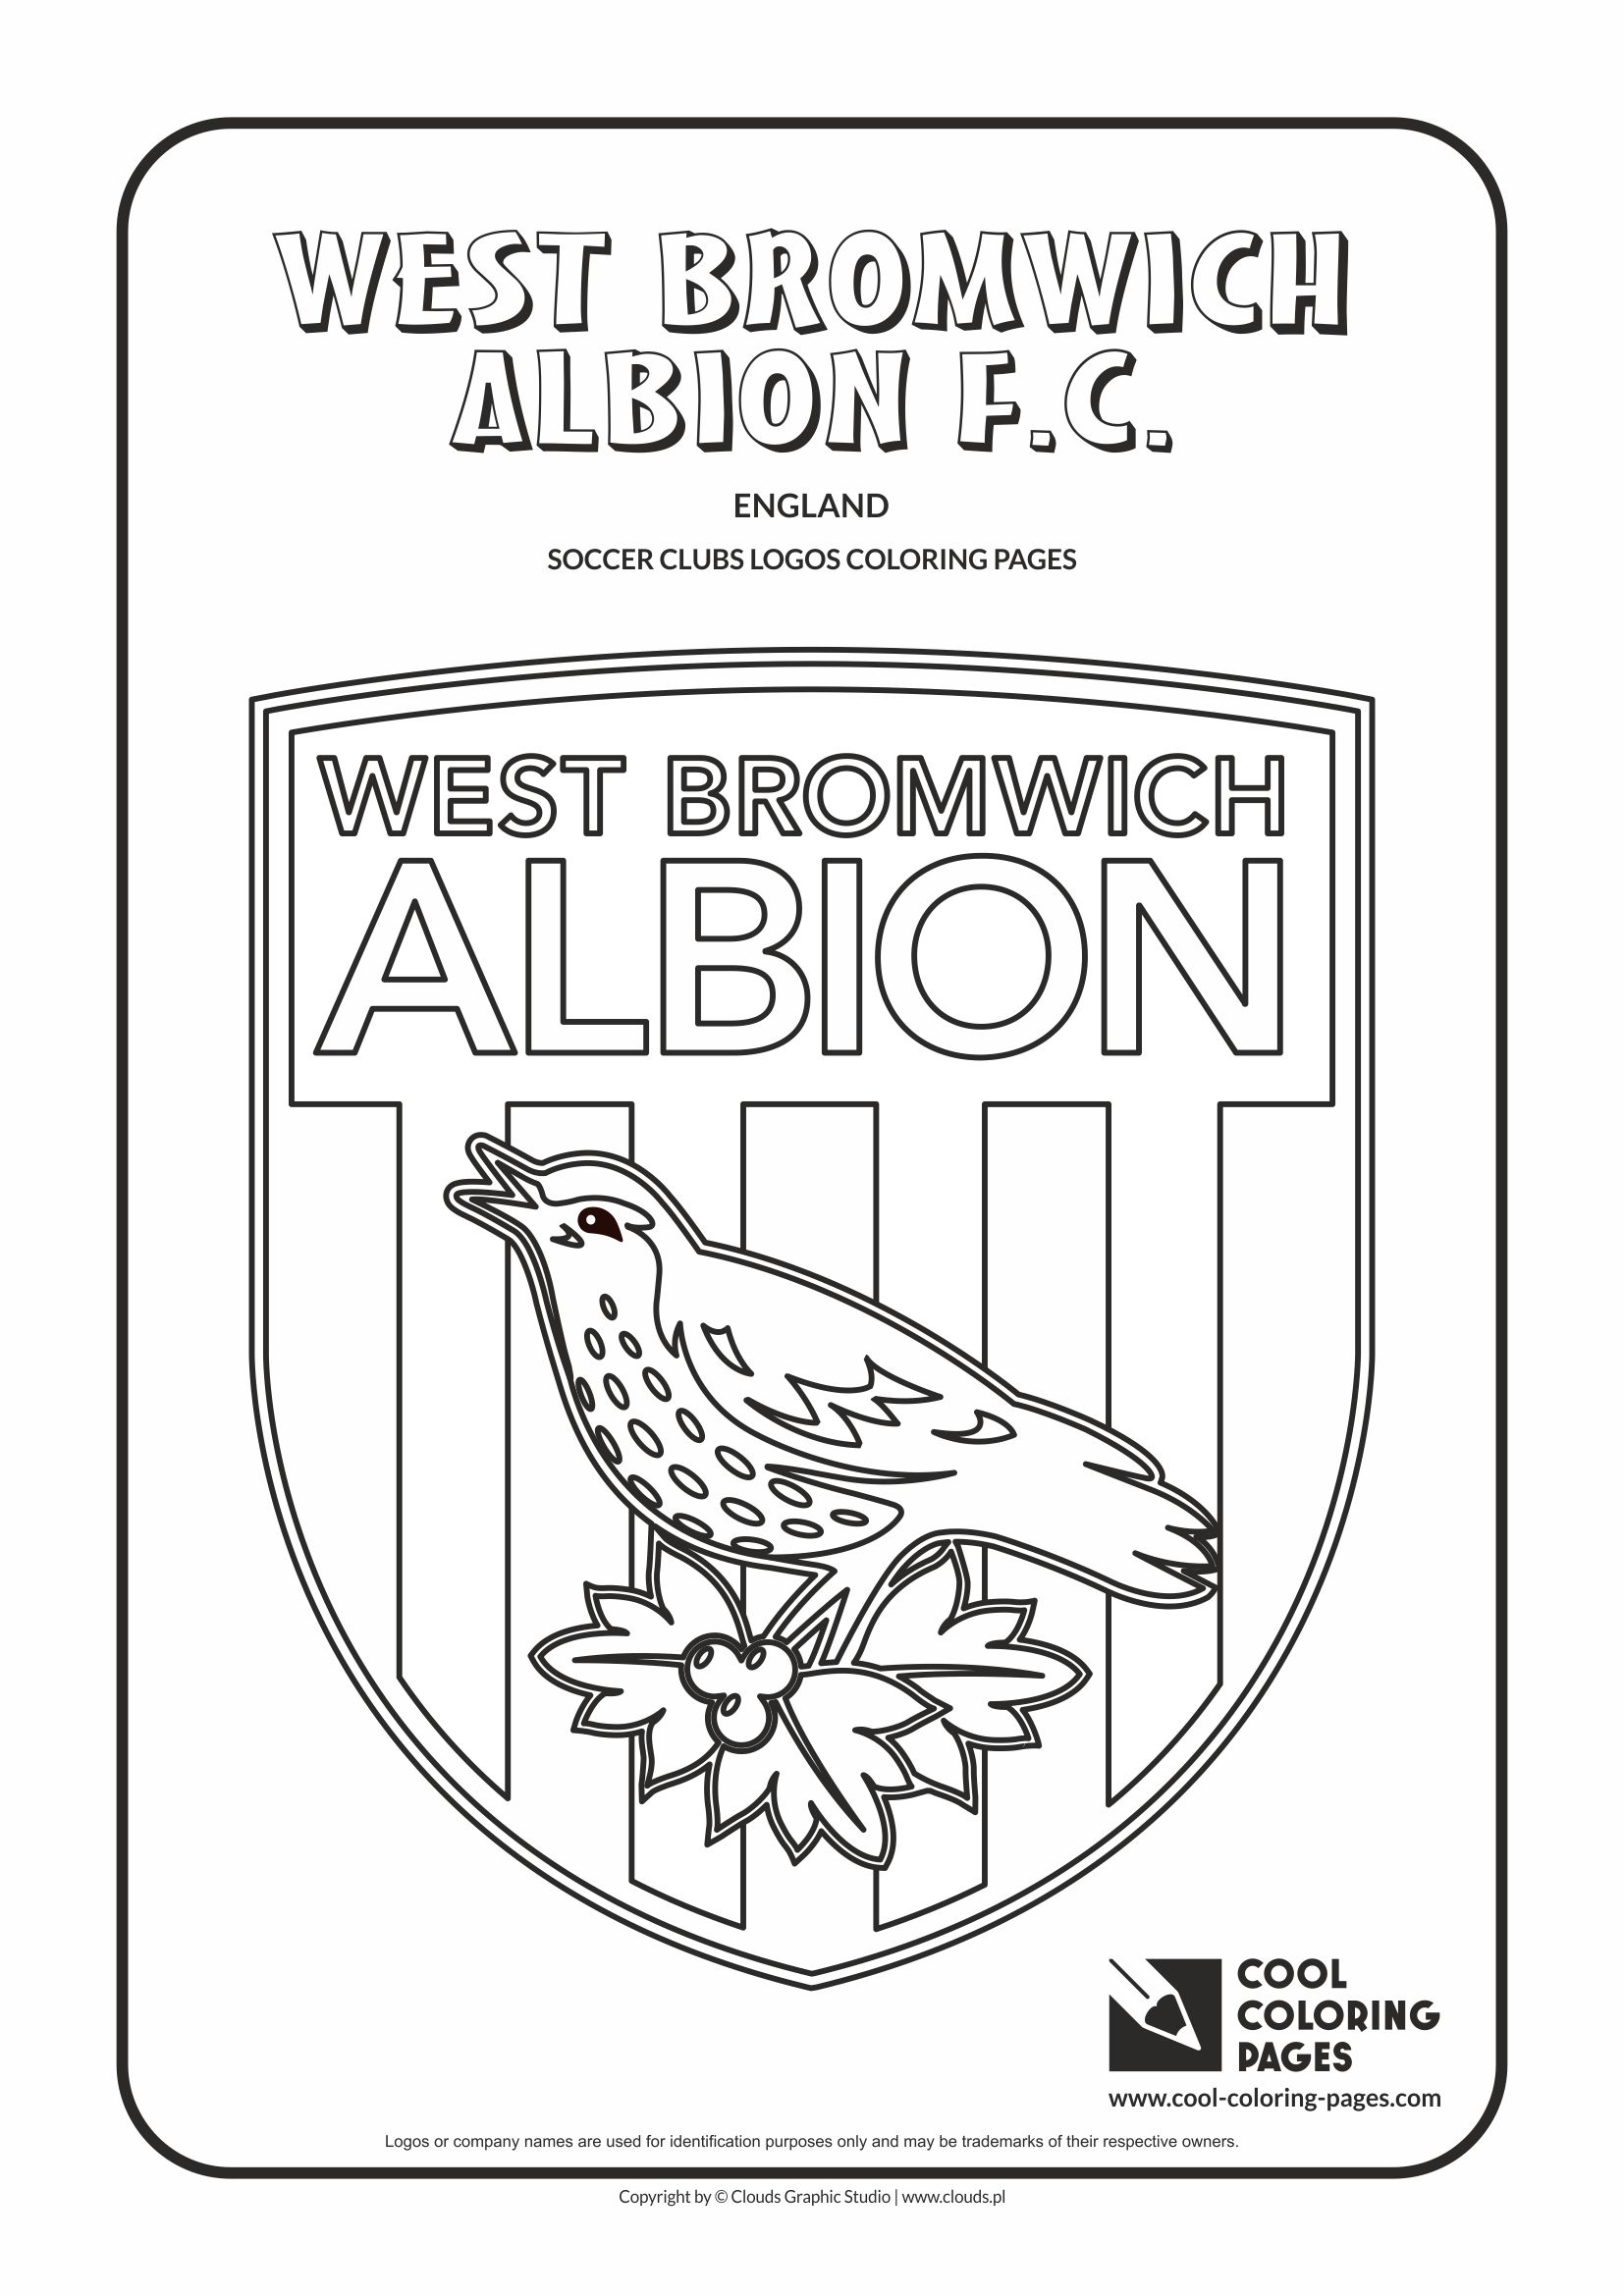 West Bromwich Albion F.C. logo coloring / Coloring page with West Bromwich Albion F.C. logo / West Brom logo colouring page.